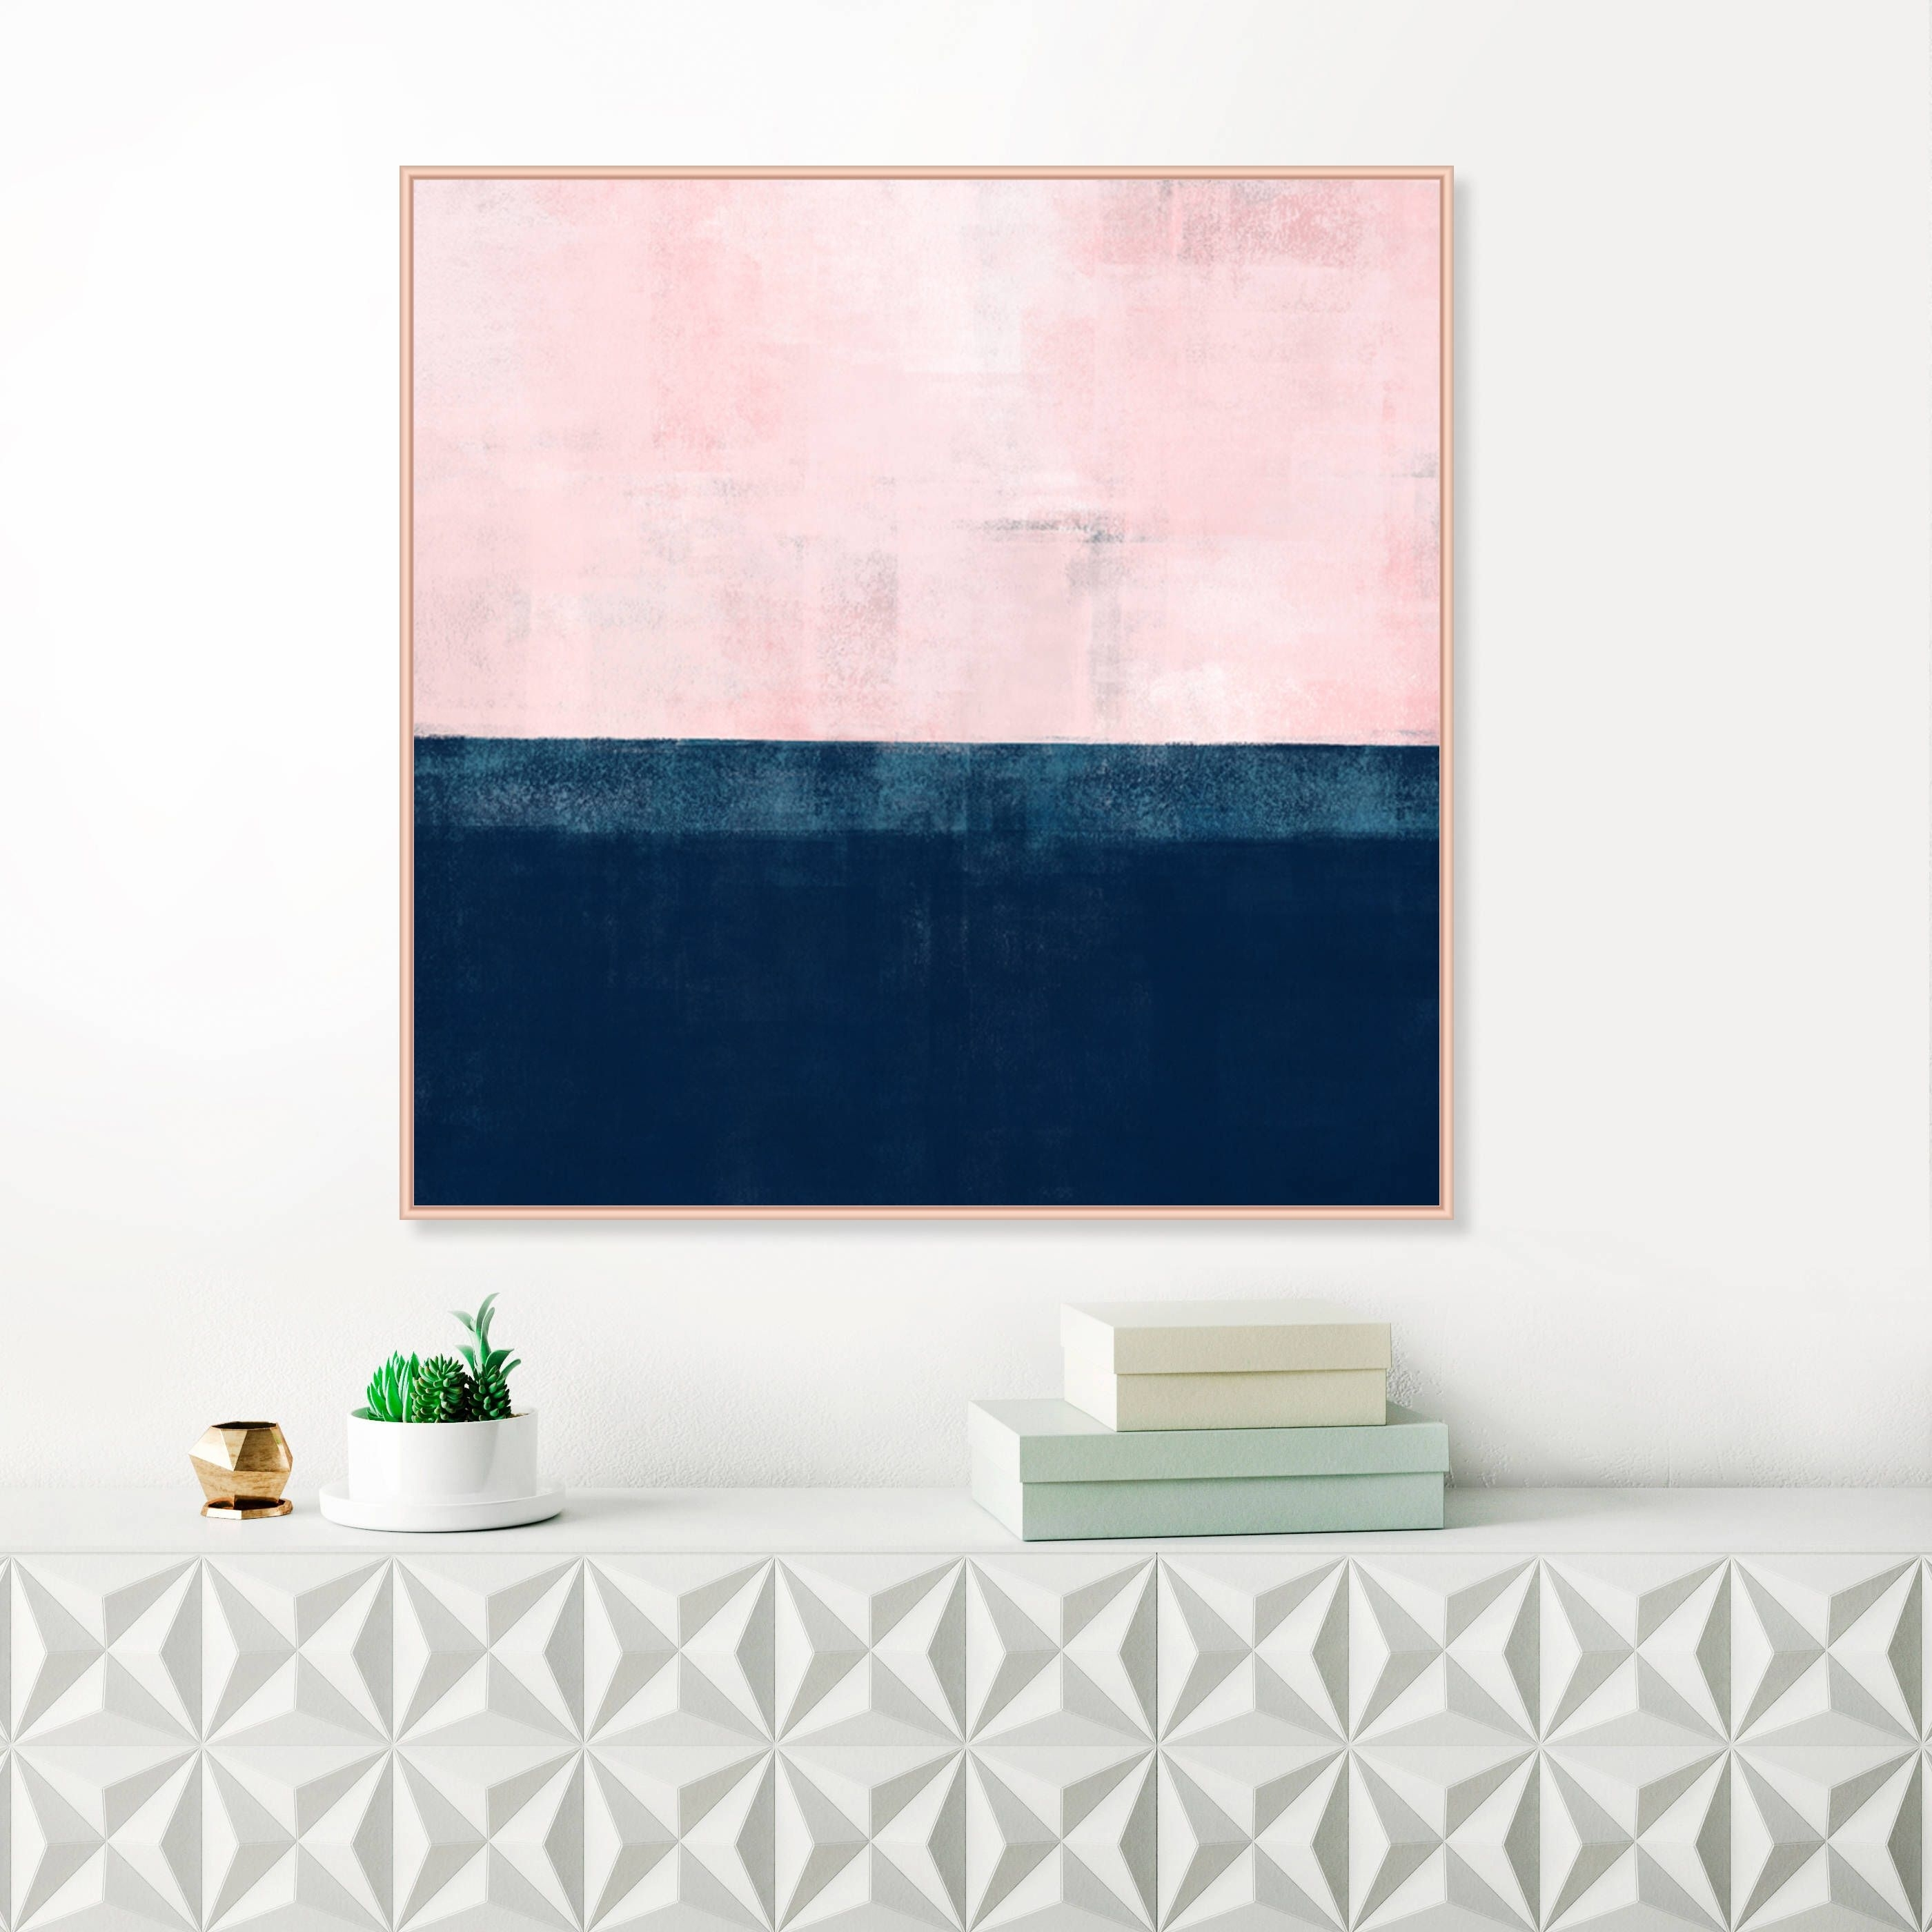 Oversized Pink And Navy Blue Abstract Wall Art, Pink And Indigo with Pink Wall Art (Image 16 of 20)